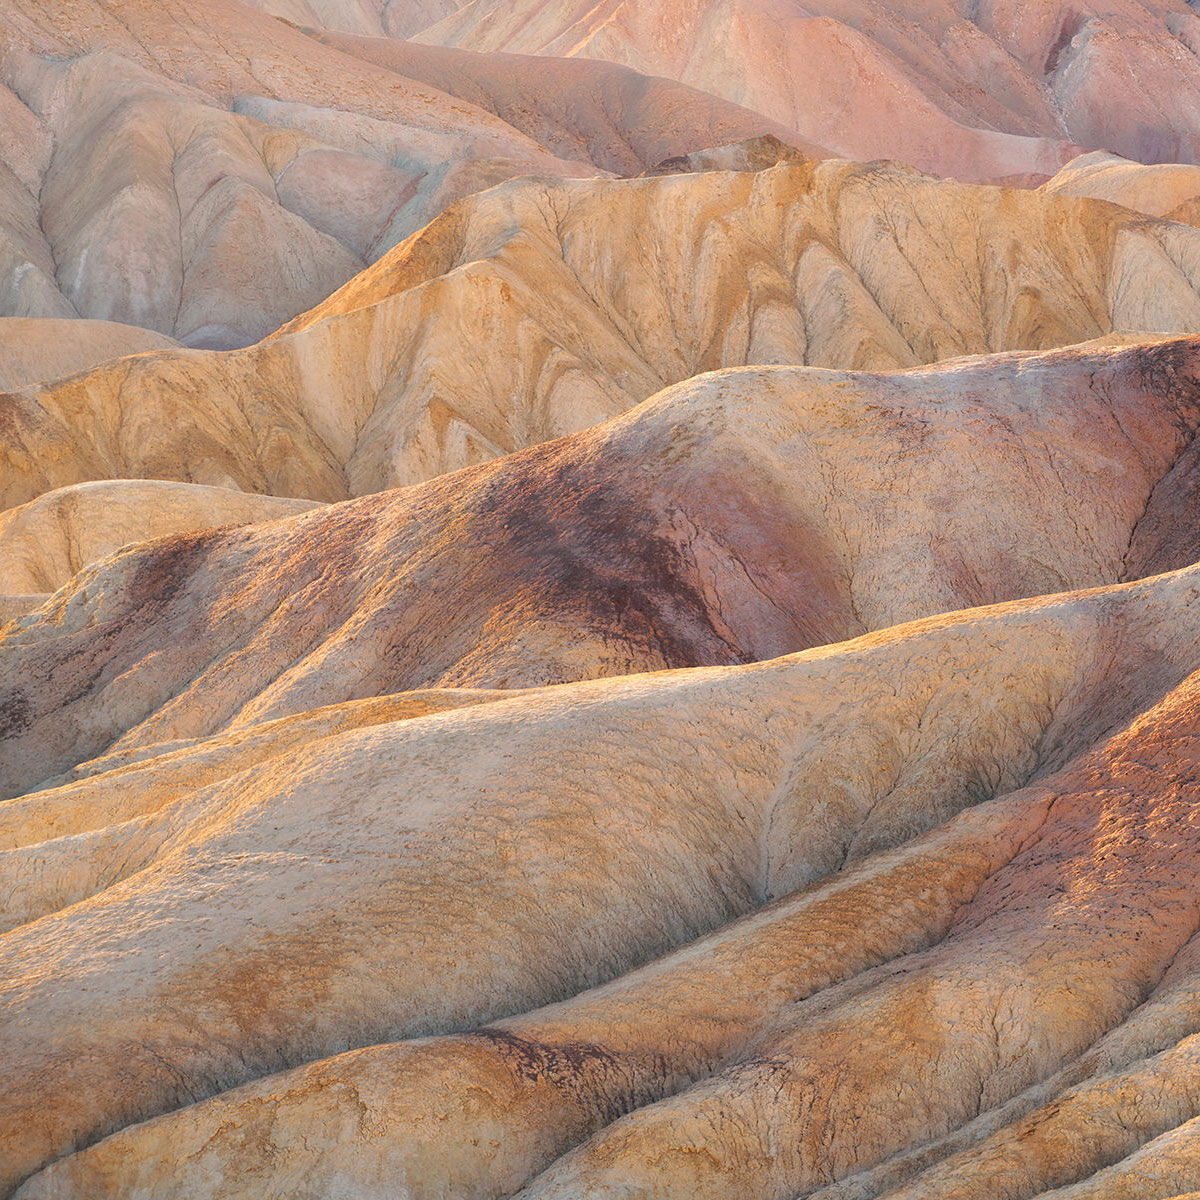 A photograph of Zabriskie Point In Death Valley National Park titled Ruffles.